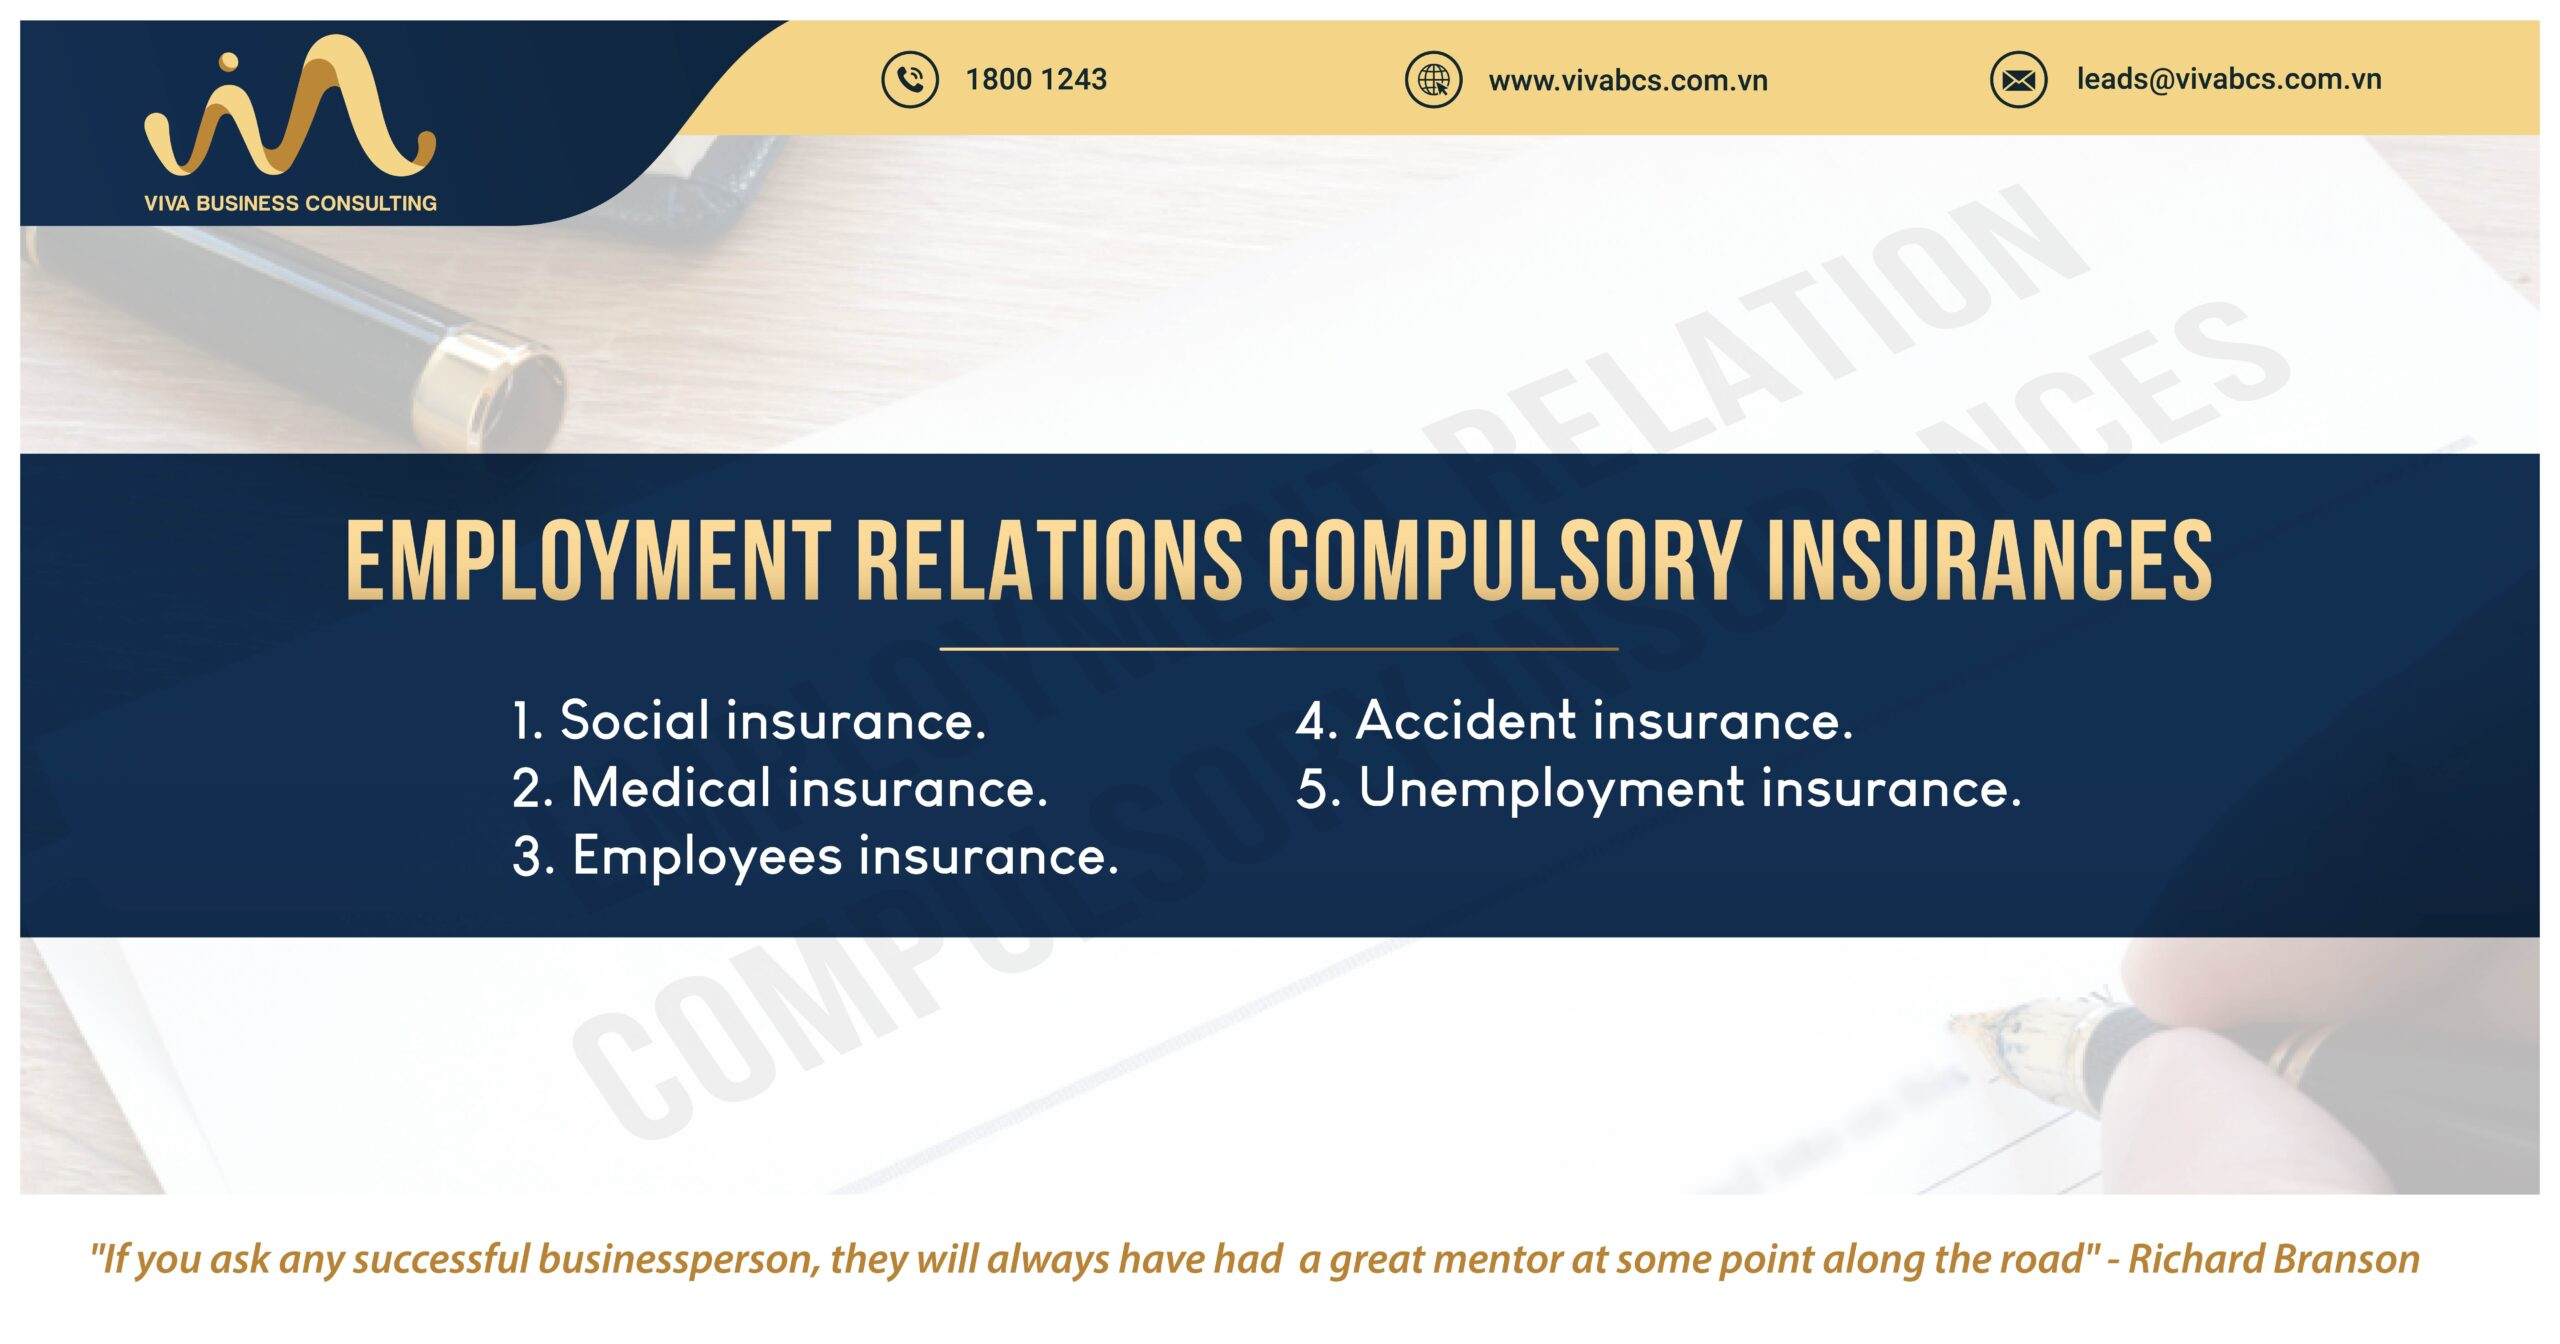 Social insurance for foreigners in Vietnam